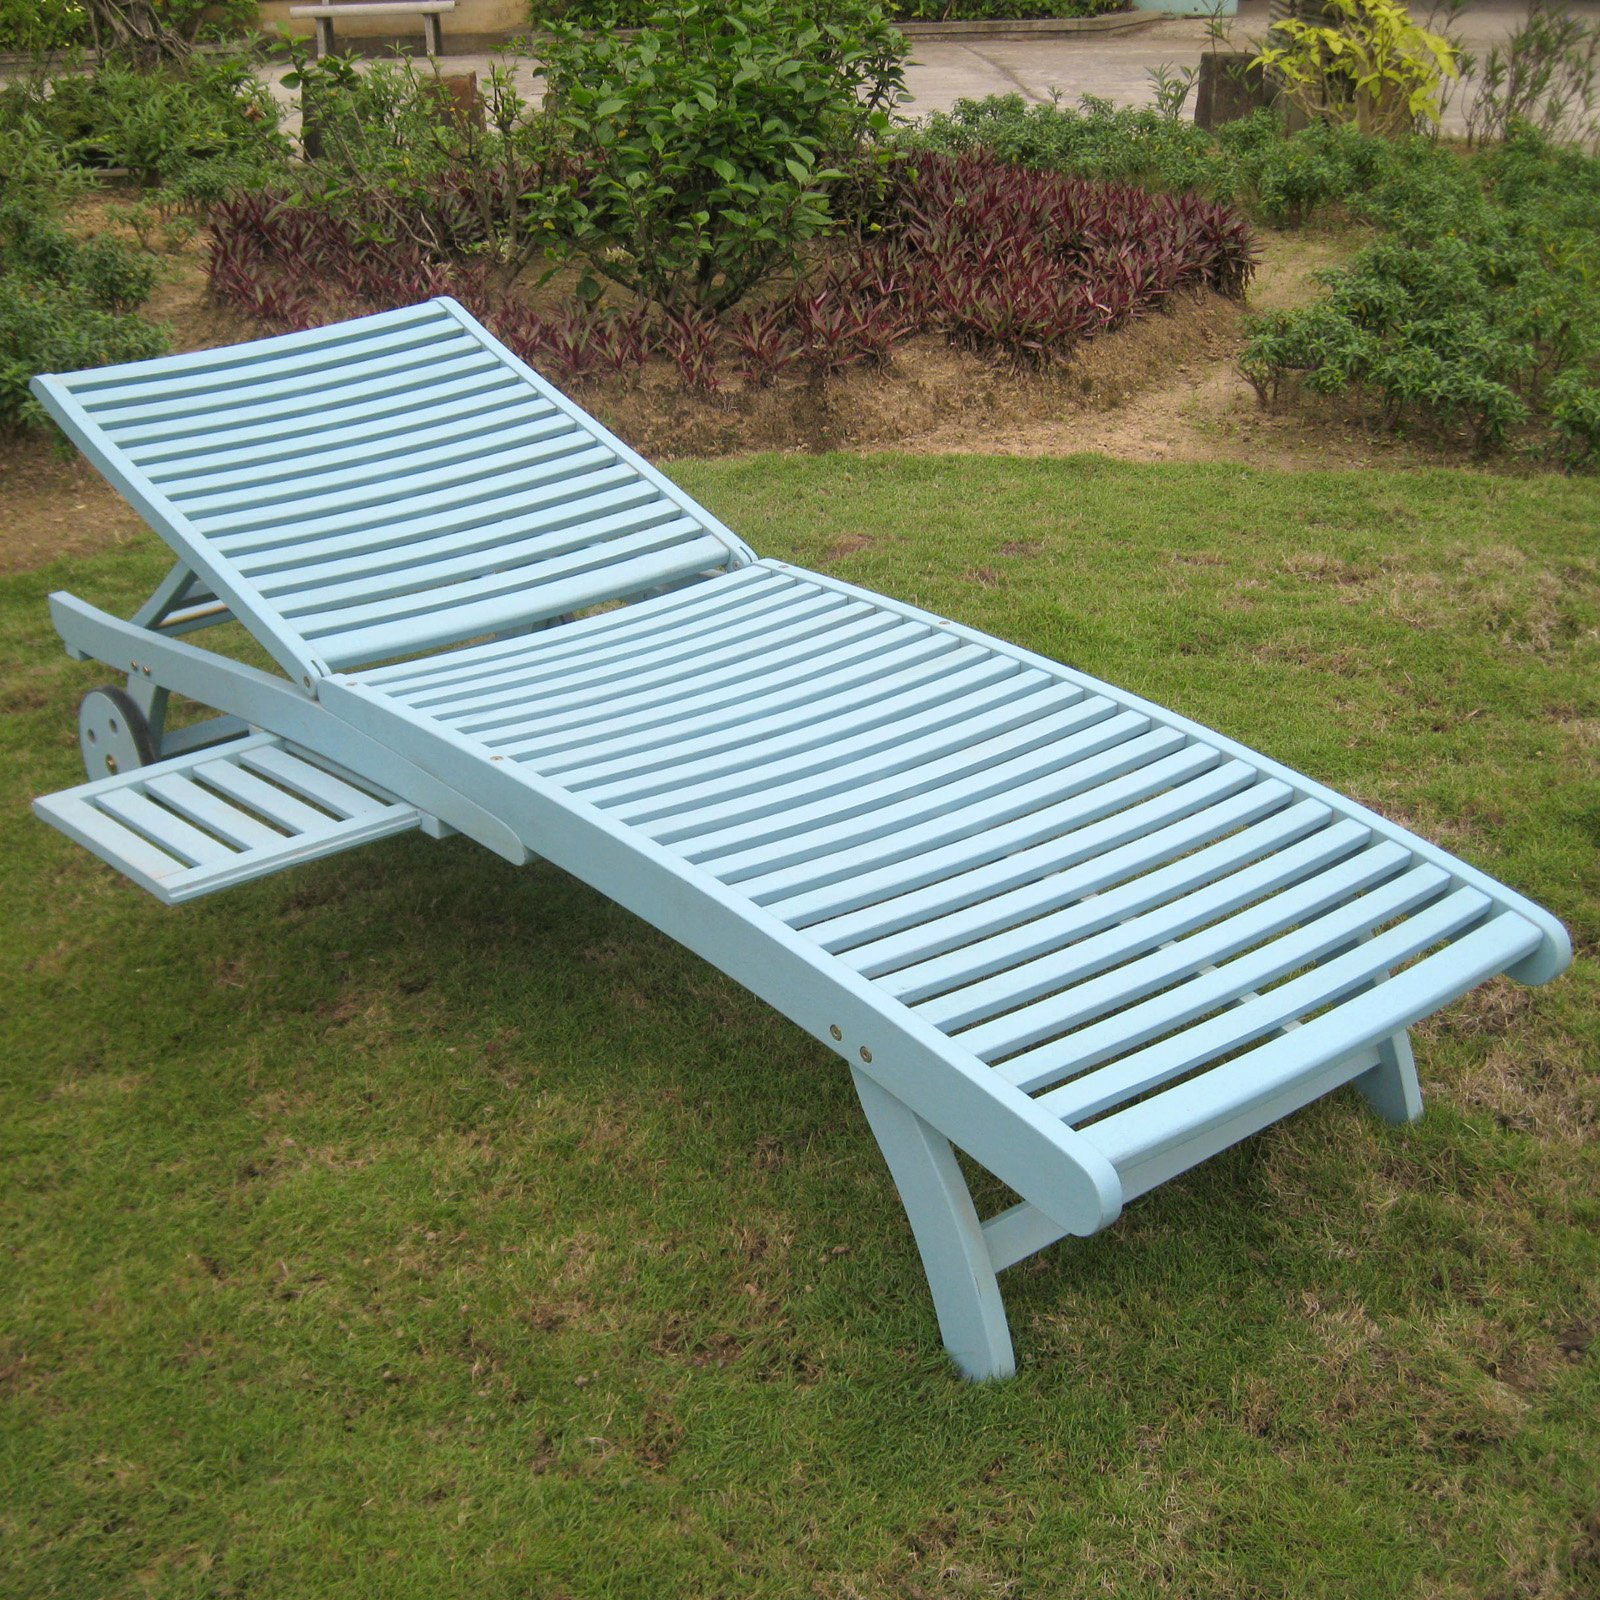 Chelsea Acacia Outdoor Chaise Lounge with Sliding Tray by International Caravan